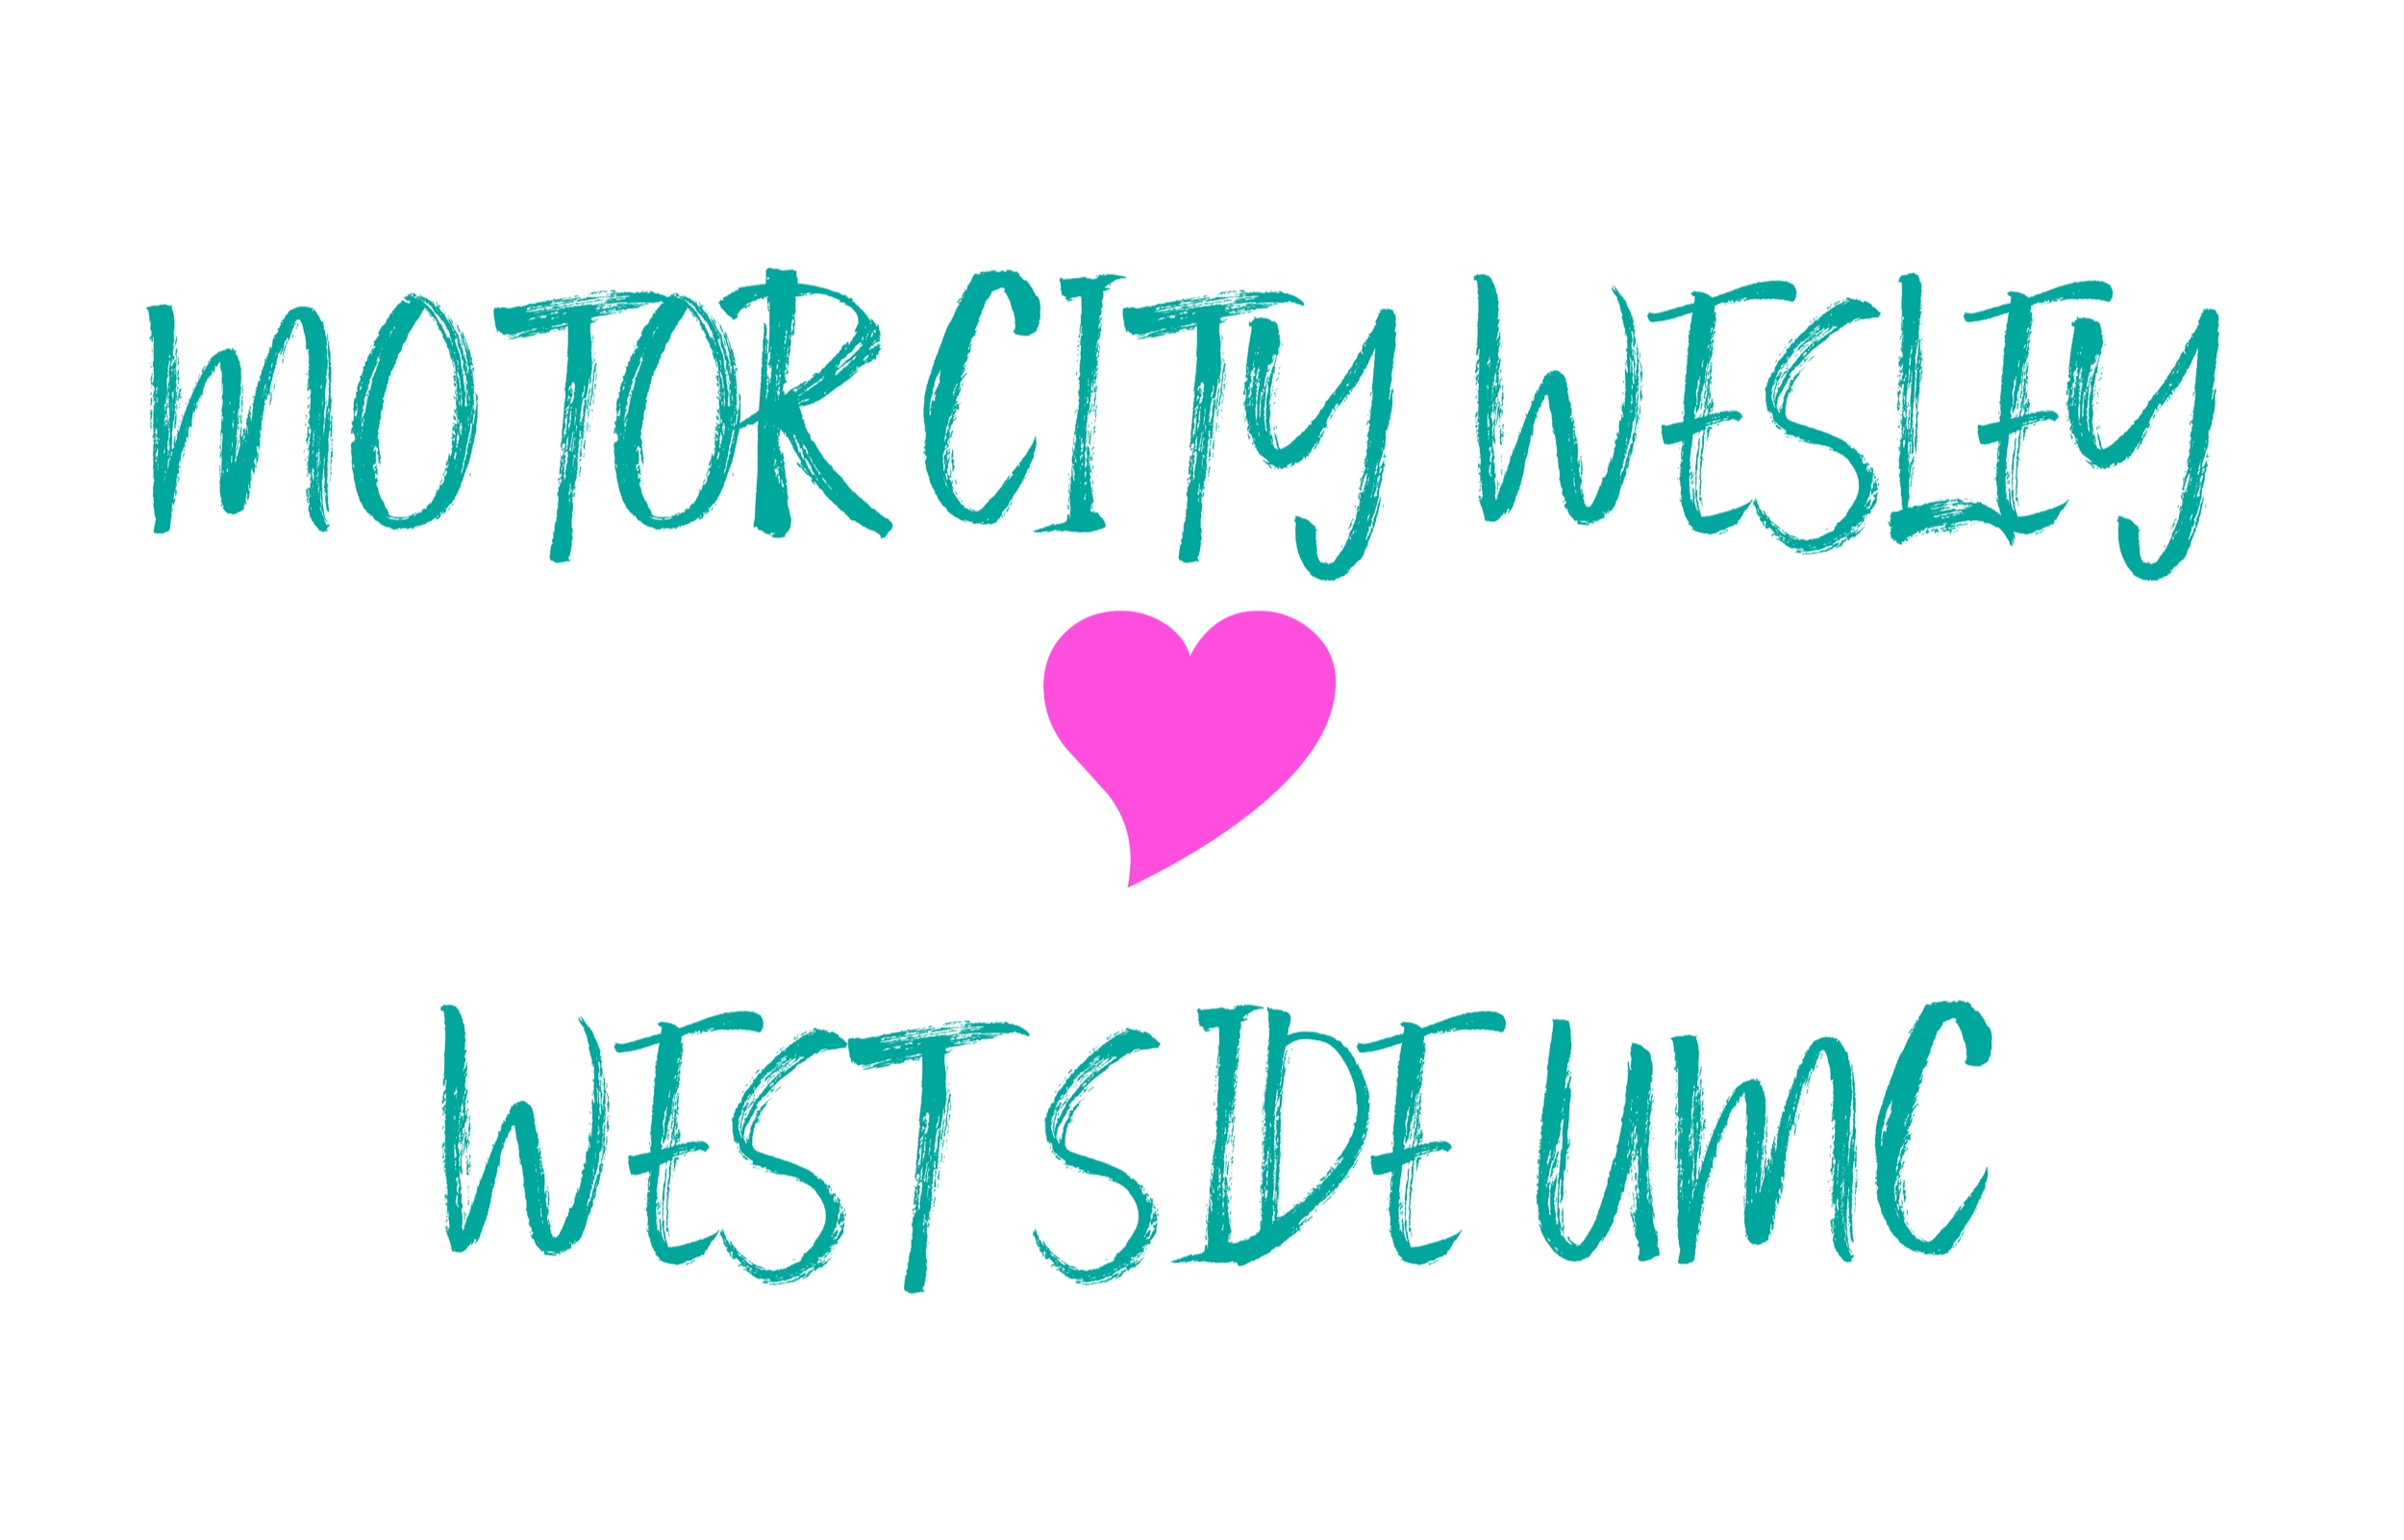 love+note+west+side.jpg